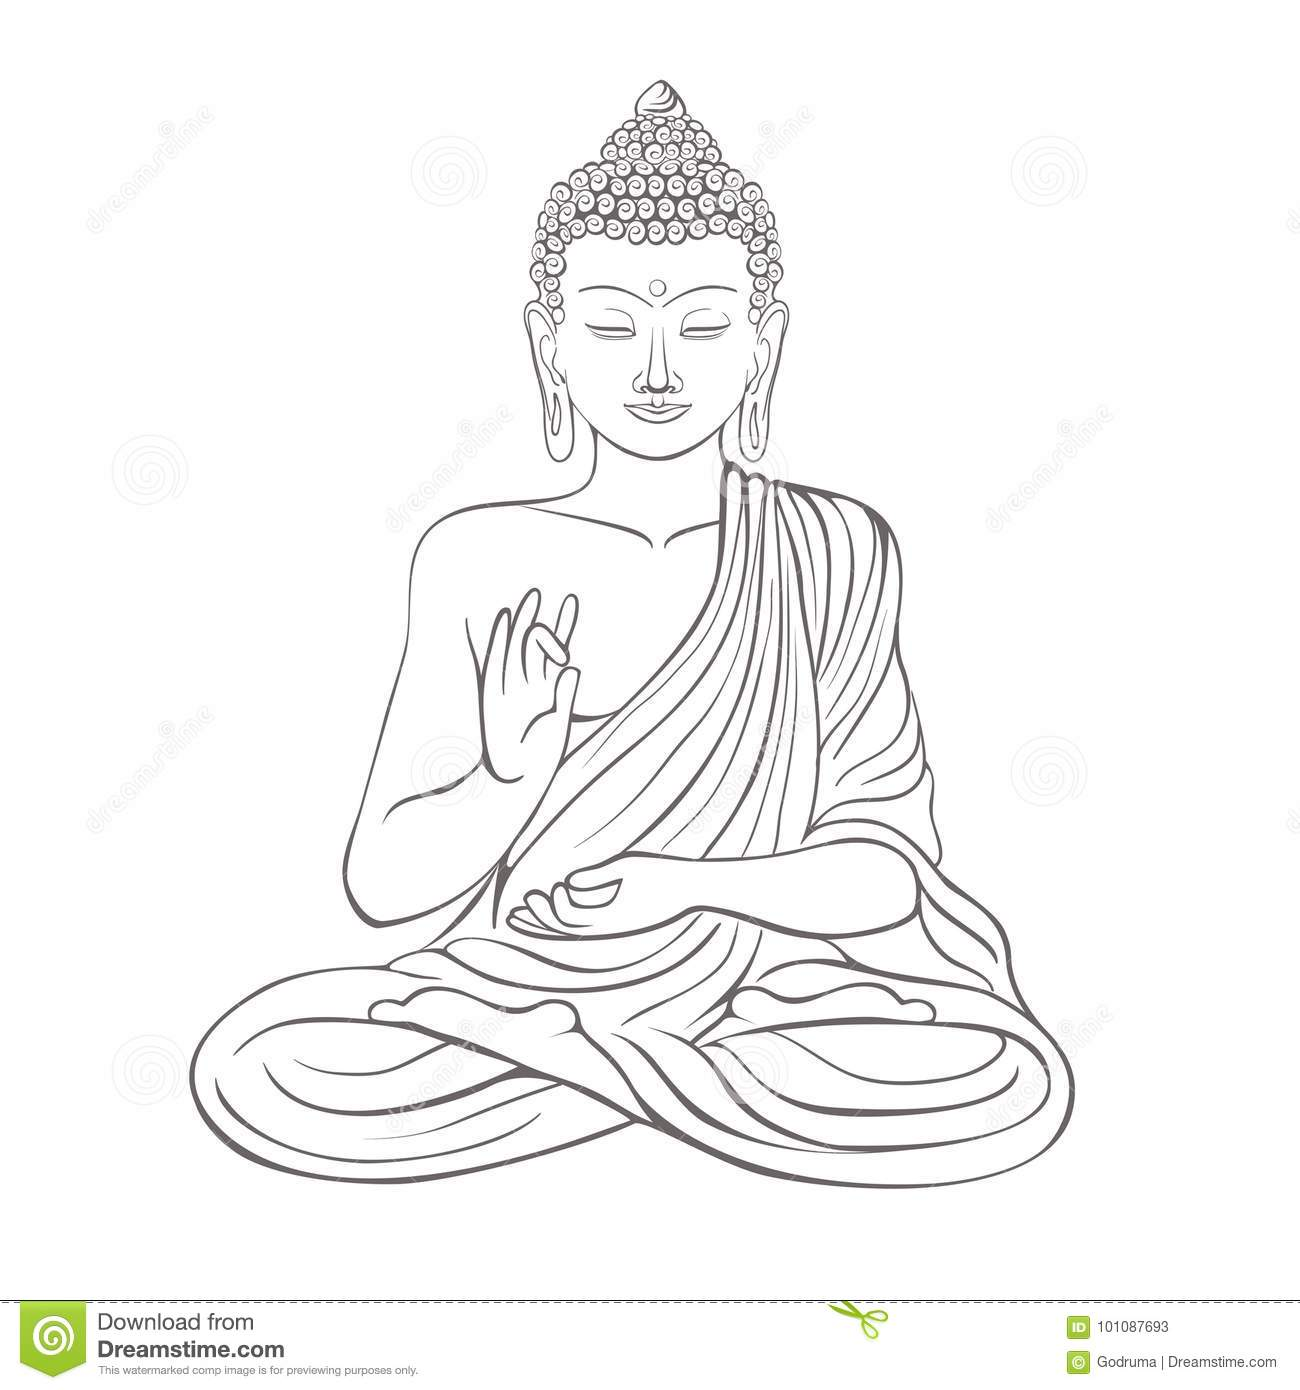 Gautama buddha with closed eyes and raised right hand sitting and meditating dressed in clothes on vector illustration isolated on white background